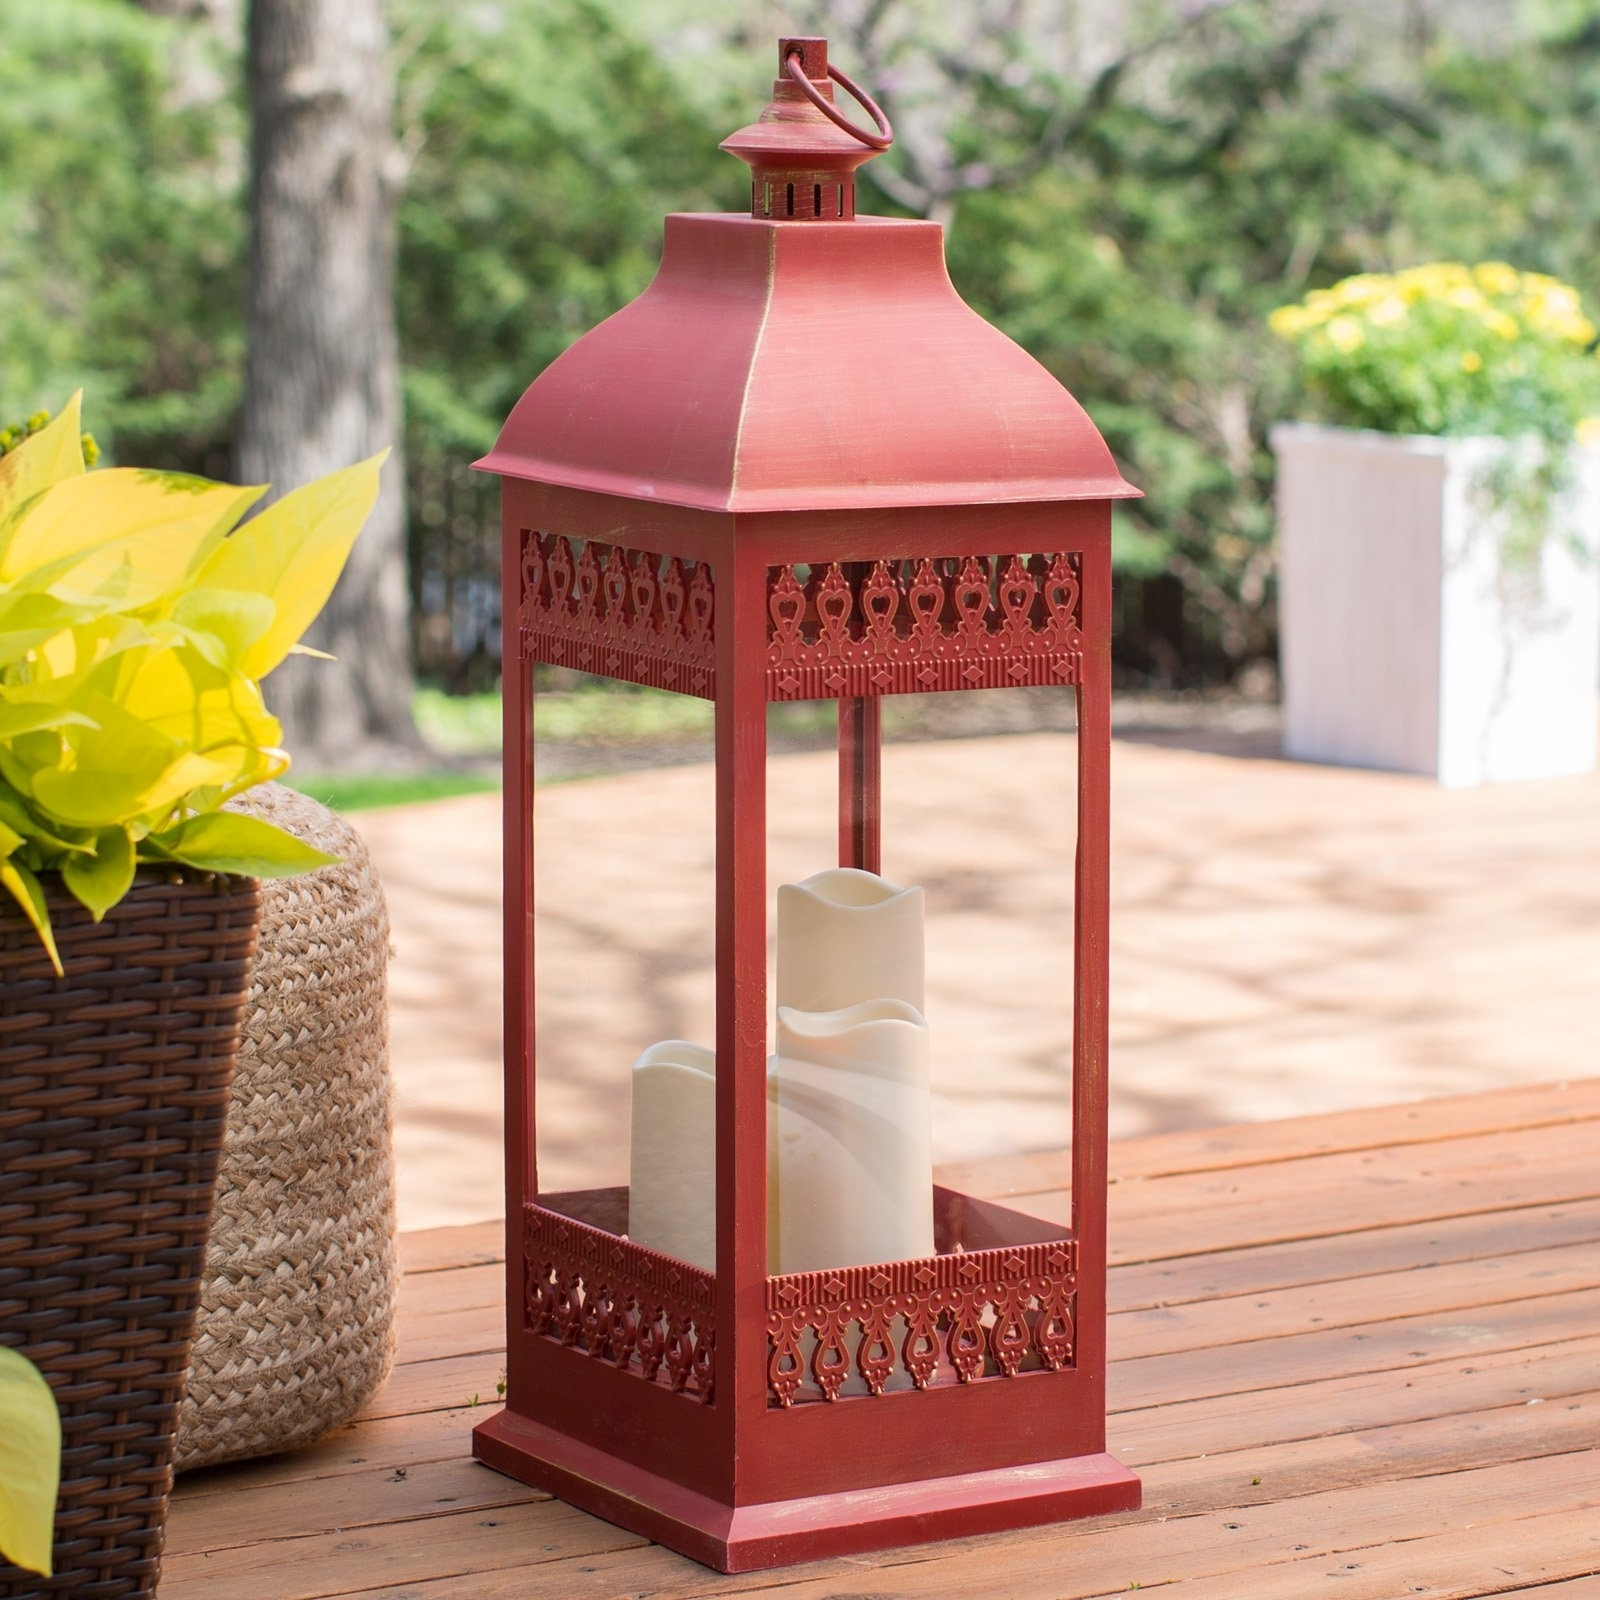 Smart Design San Nicola Lantern With Led Candles | Hayneedle intended for Outdoor Rustic Lanterns (Image 18 of 20)